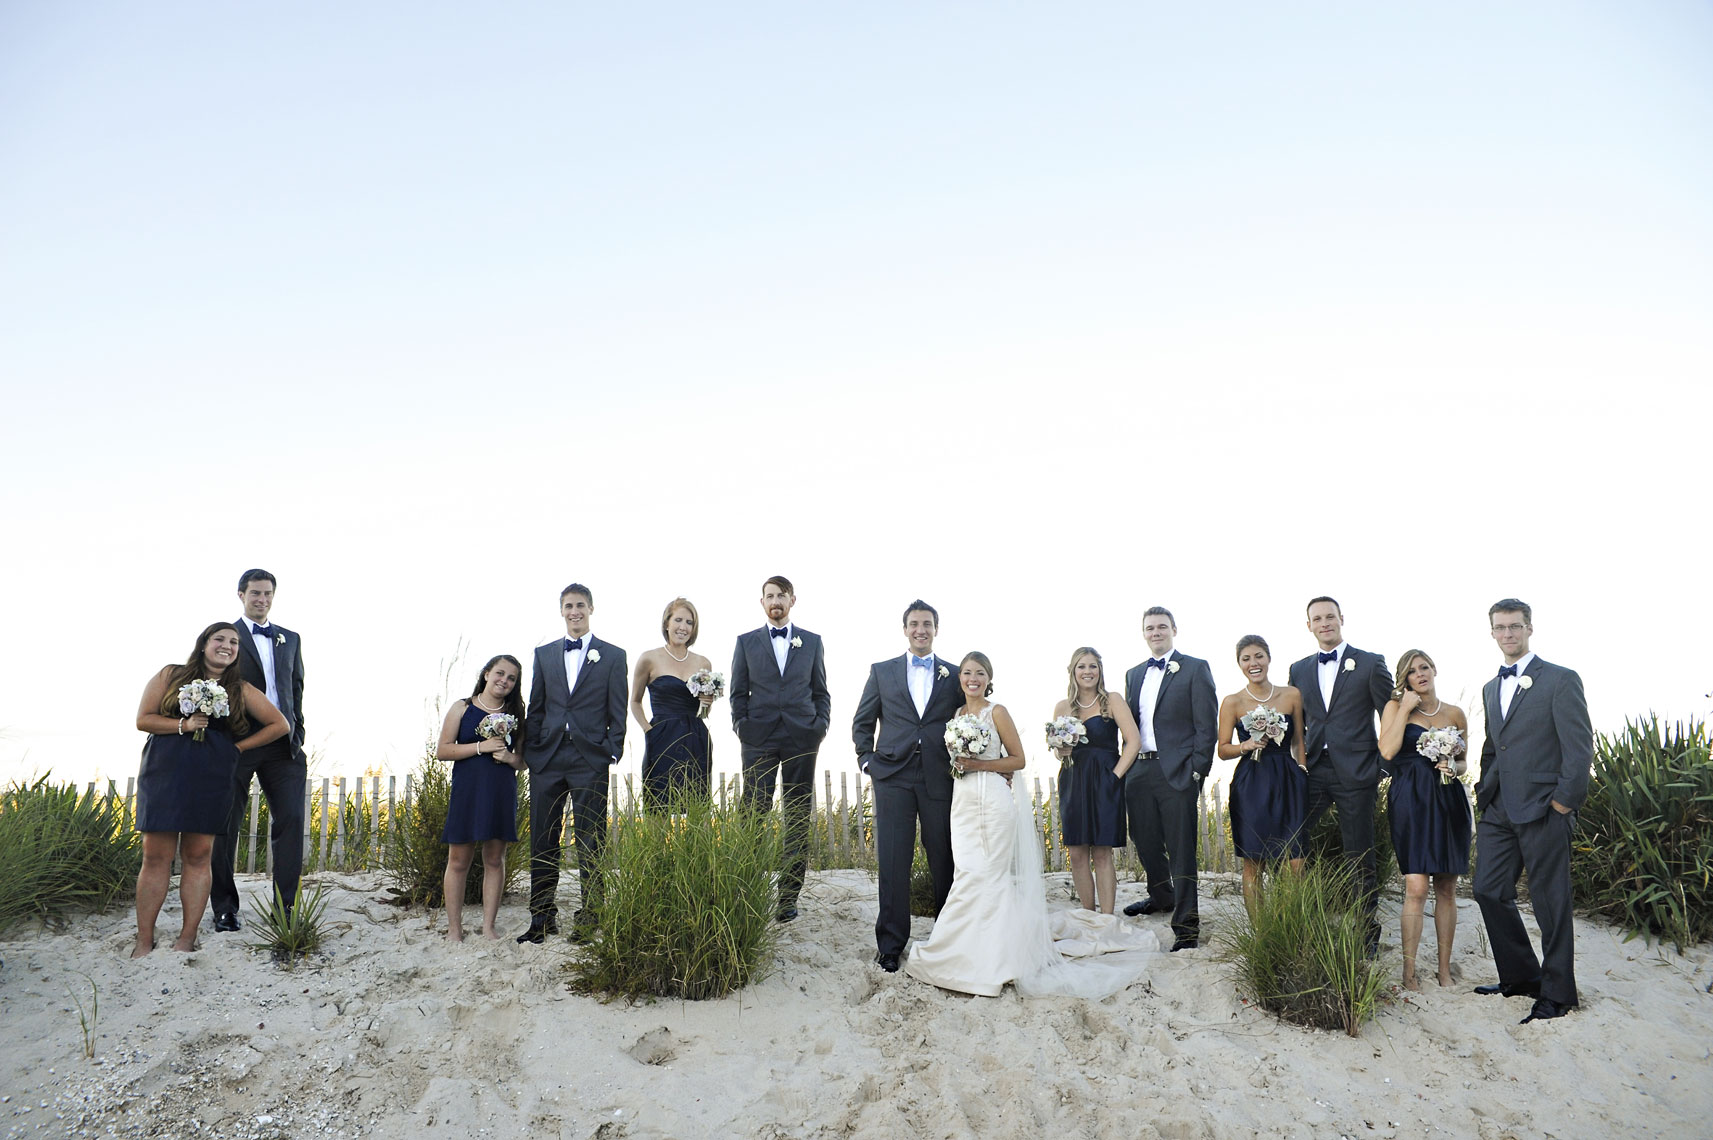 bonnetislandwedding-038